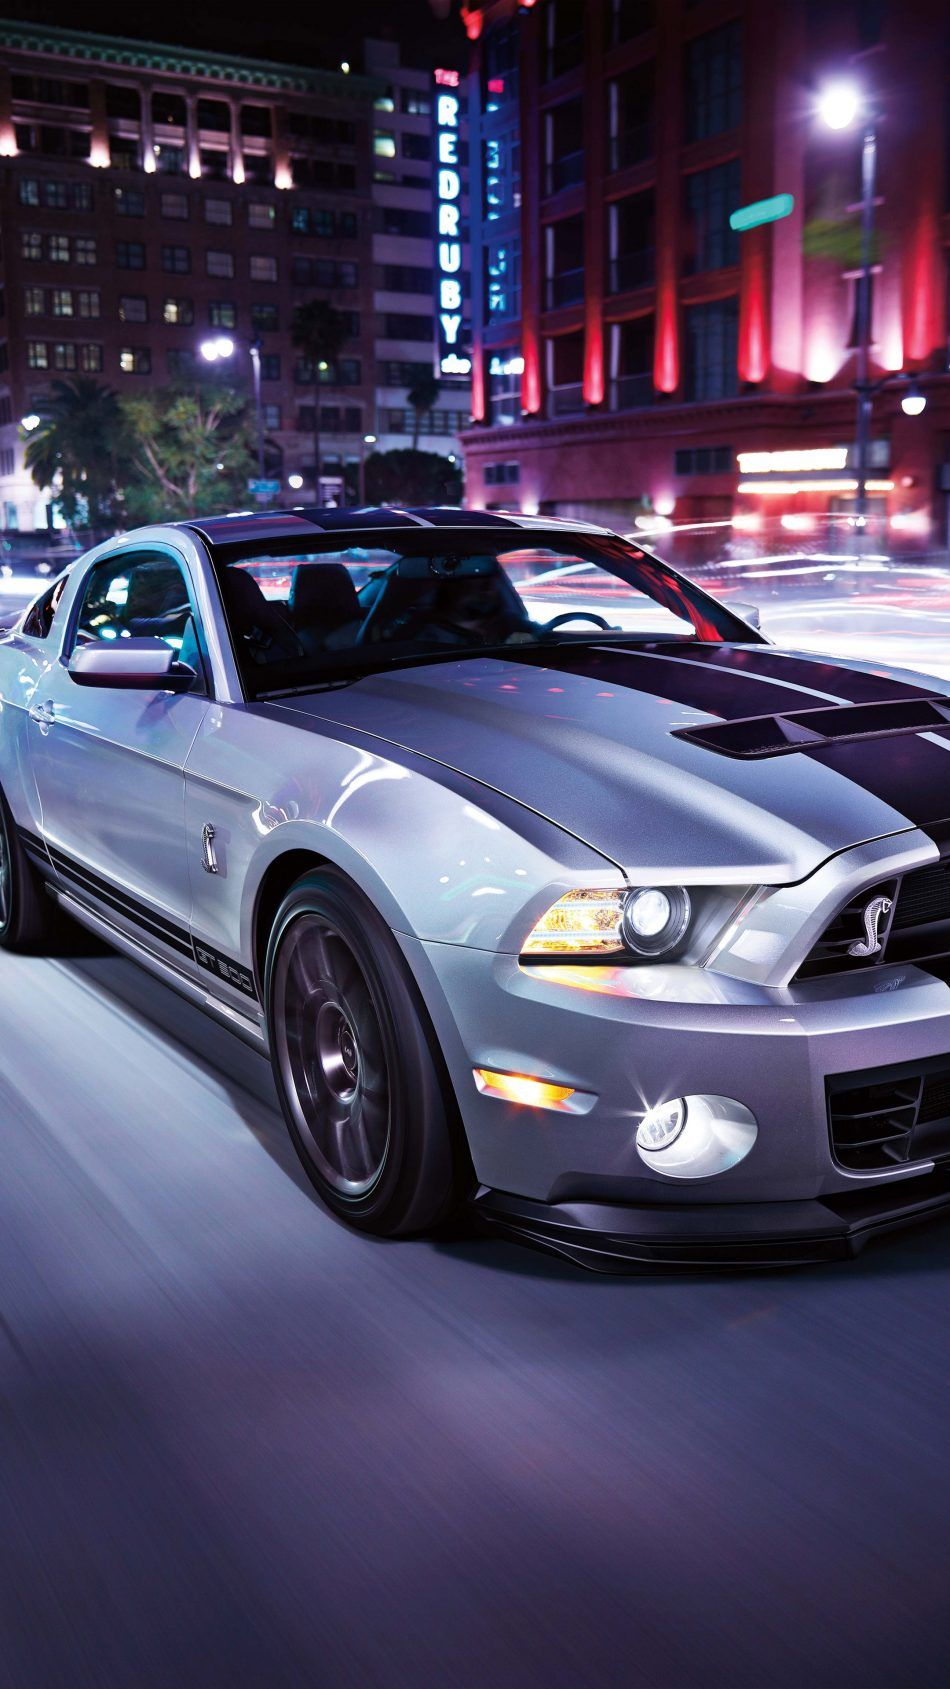 Ford Mustang Night Street Car Wallpapers Car Wallpapers Cars